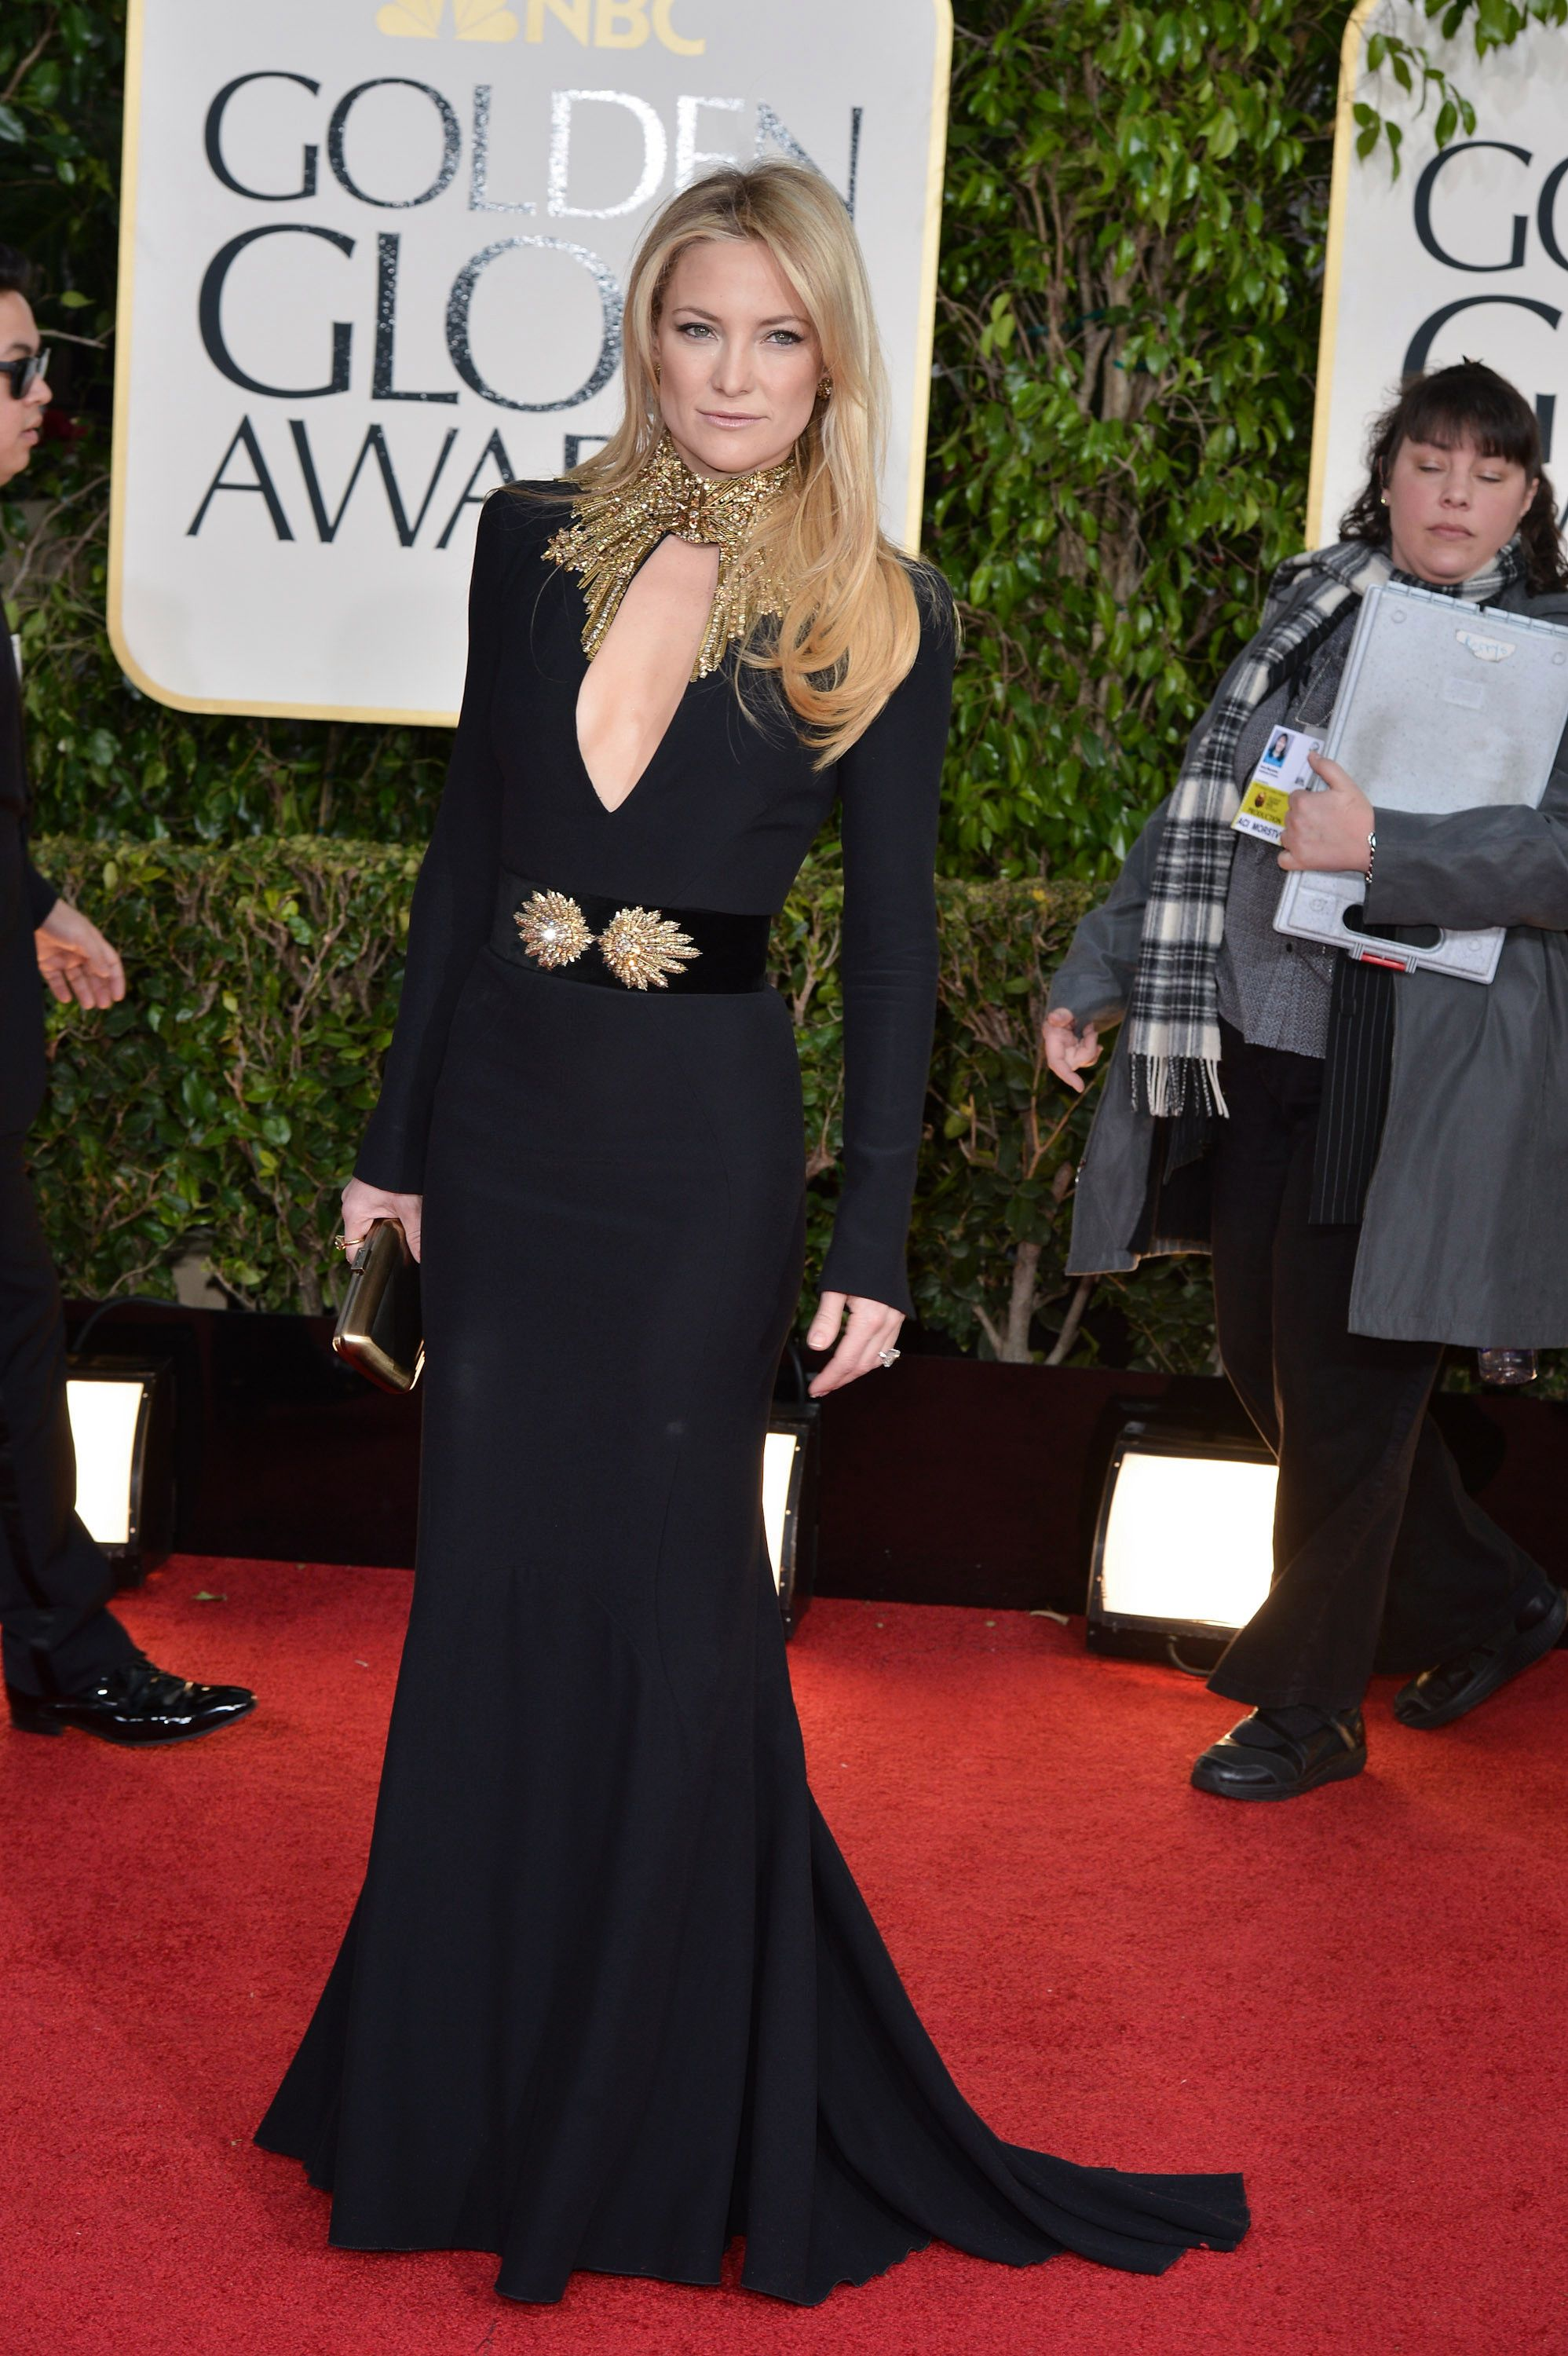 The Best Golden Globes Dresses Of All Time From Julia Roberts To Jennifer Lawrence Golden Globes Dresses Dresses Red Carpet Dresses [ 3000 x 1997 Pixel ]